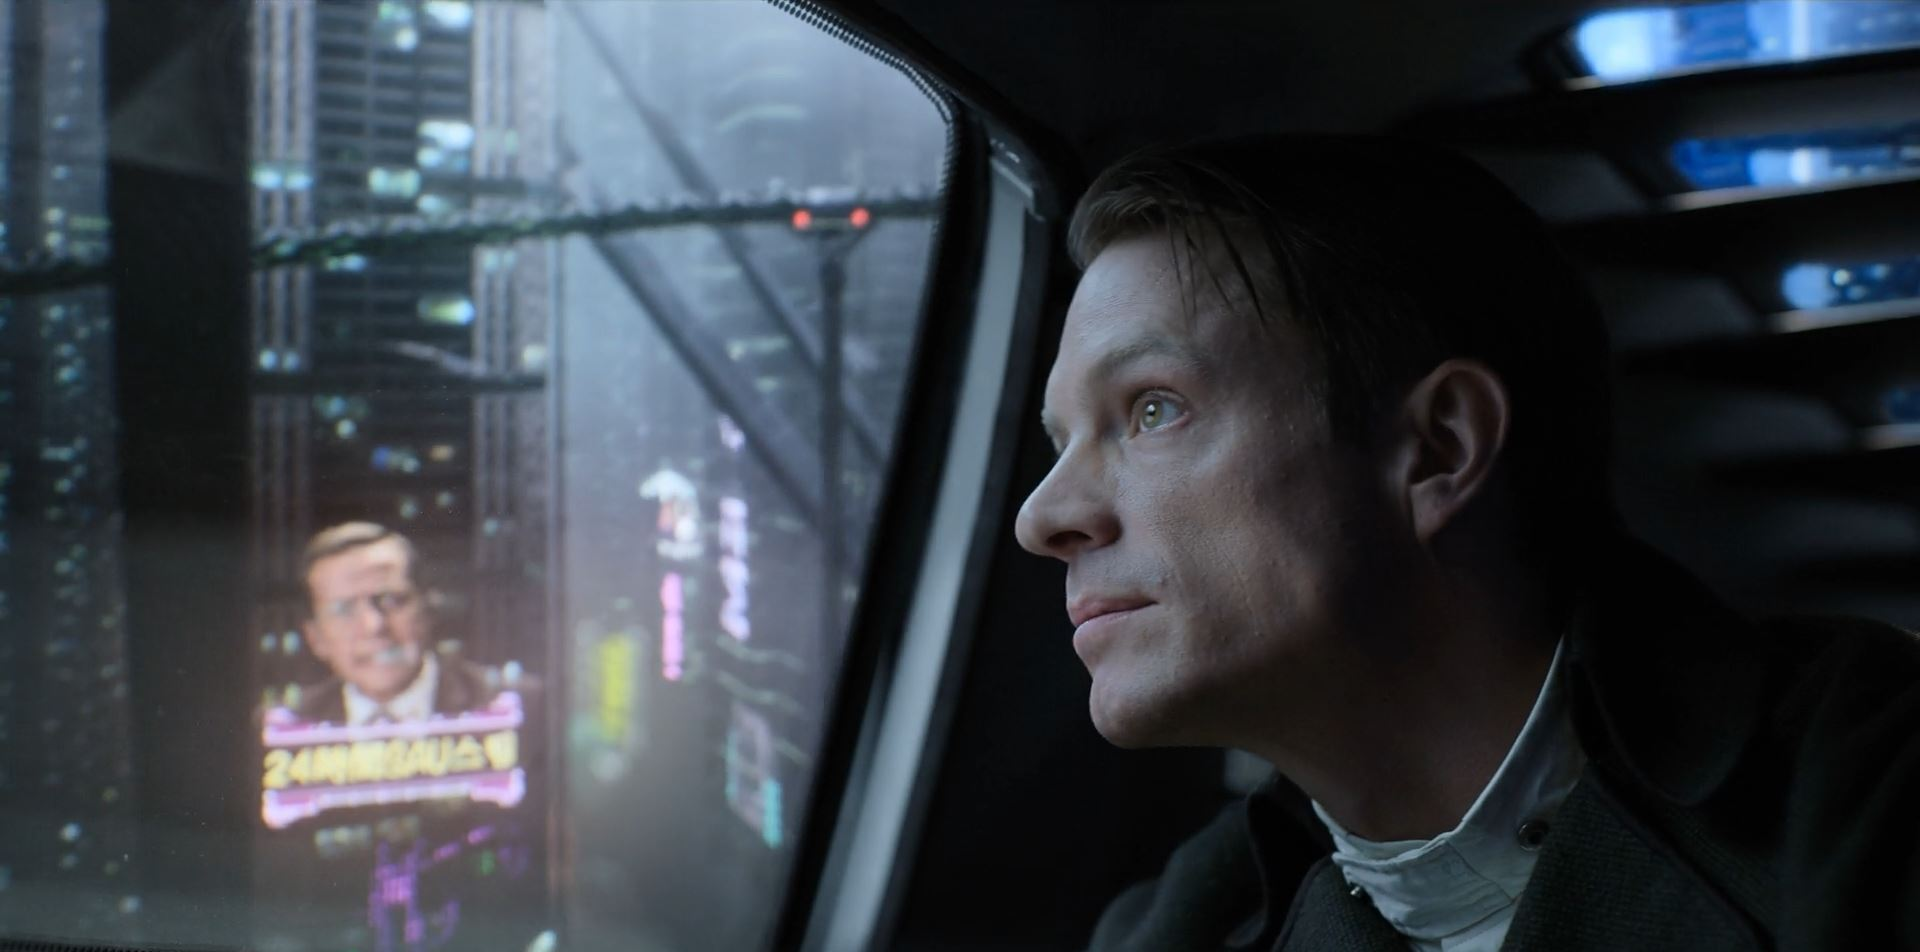 Altered Carbon - Joel Kinnaman as Takeshi Kovacs